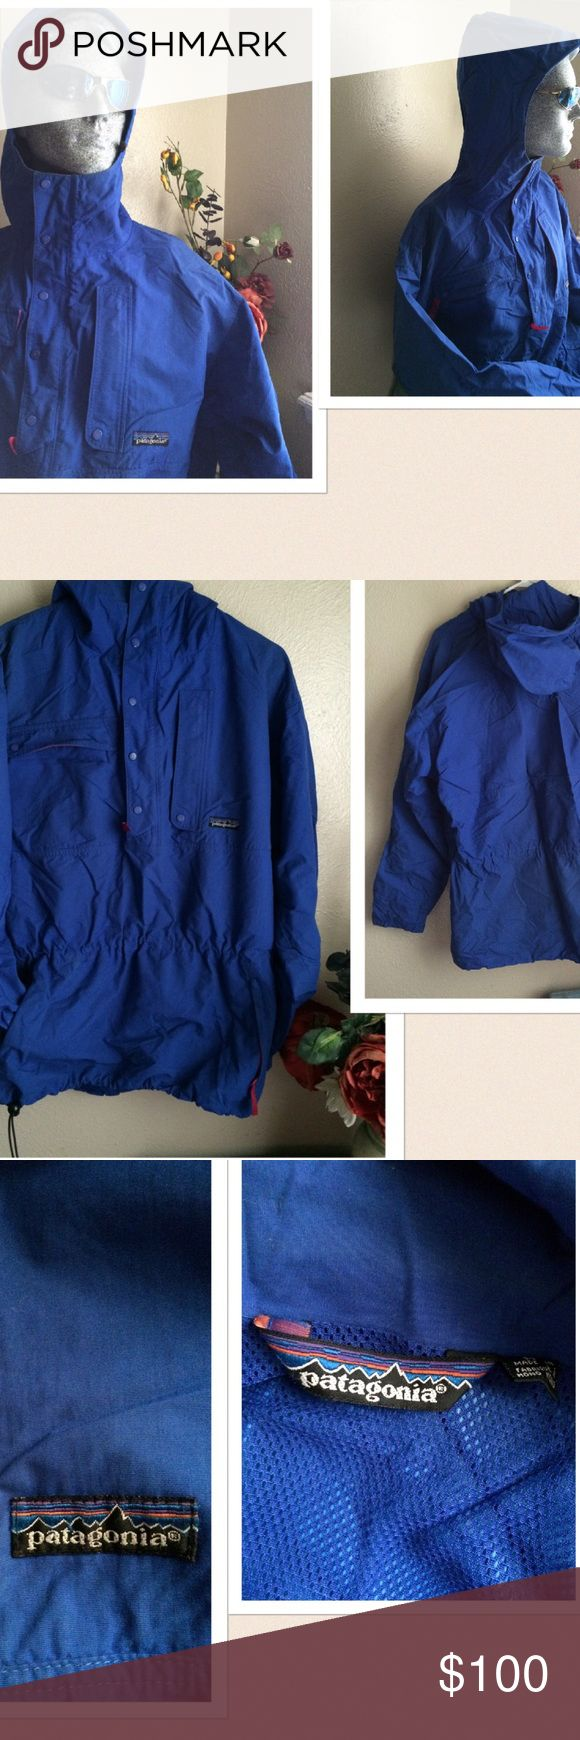 """Vintage Patagonia Parka Hoodie Rain Jacket 💲Final Price 🚫🚫No Offers🚫🚫 Vintage Patagonia Hoodie Rain Jacket. Has tons of features. The hoodie has a wire brim for extra support. zipper and snap button closure. 2 large top snap button & zipper pockets. 2 bottom zipper pockets. Elastic waist with draw cord at the hem. Adjustable sleeve cuffs. Material: 100% nylon. Size: Medium: pit-pit 25.5"""" Length: 31"""". Preowned with 3 small rip under the arm and inside has little wear on the elastic…"""